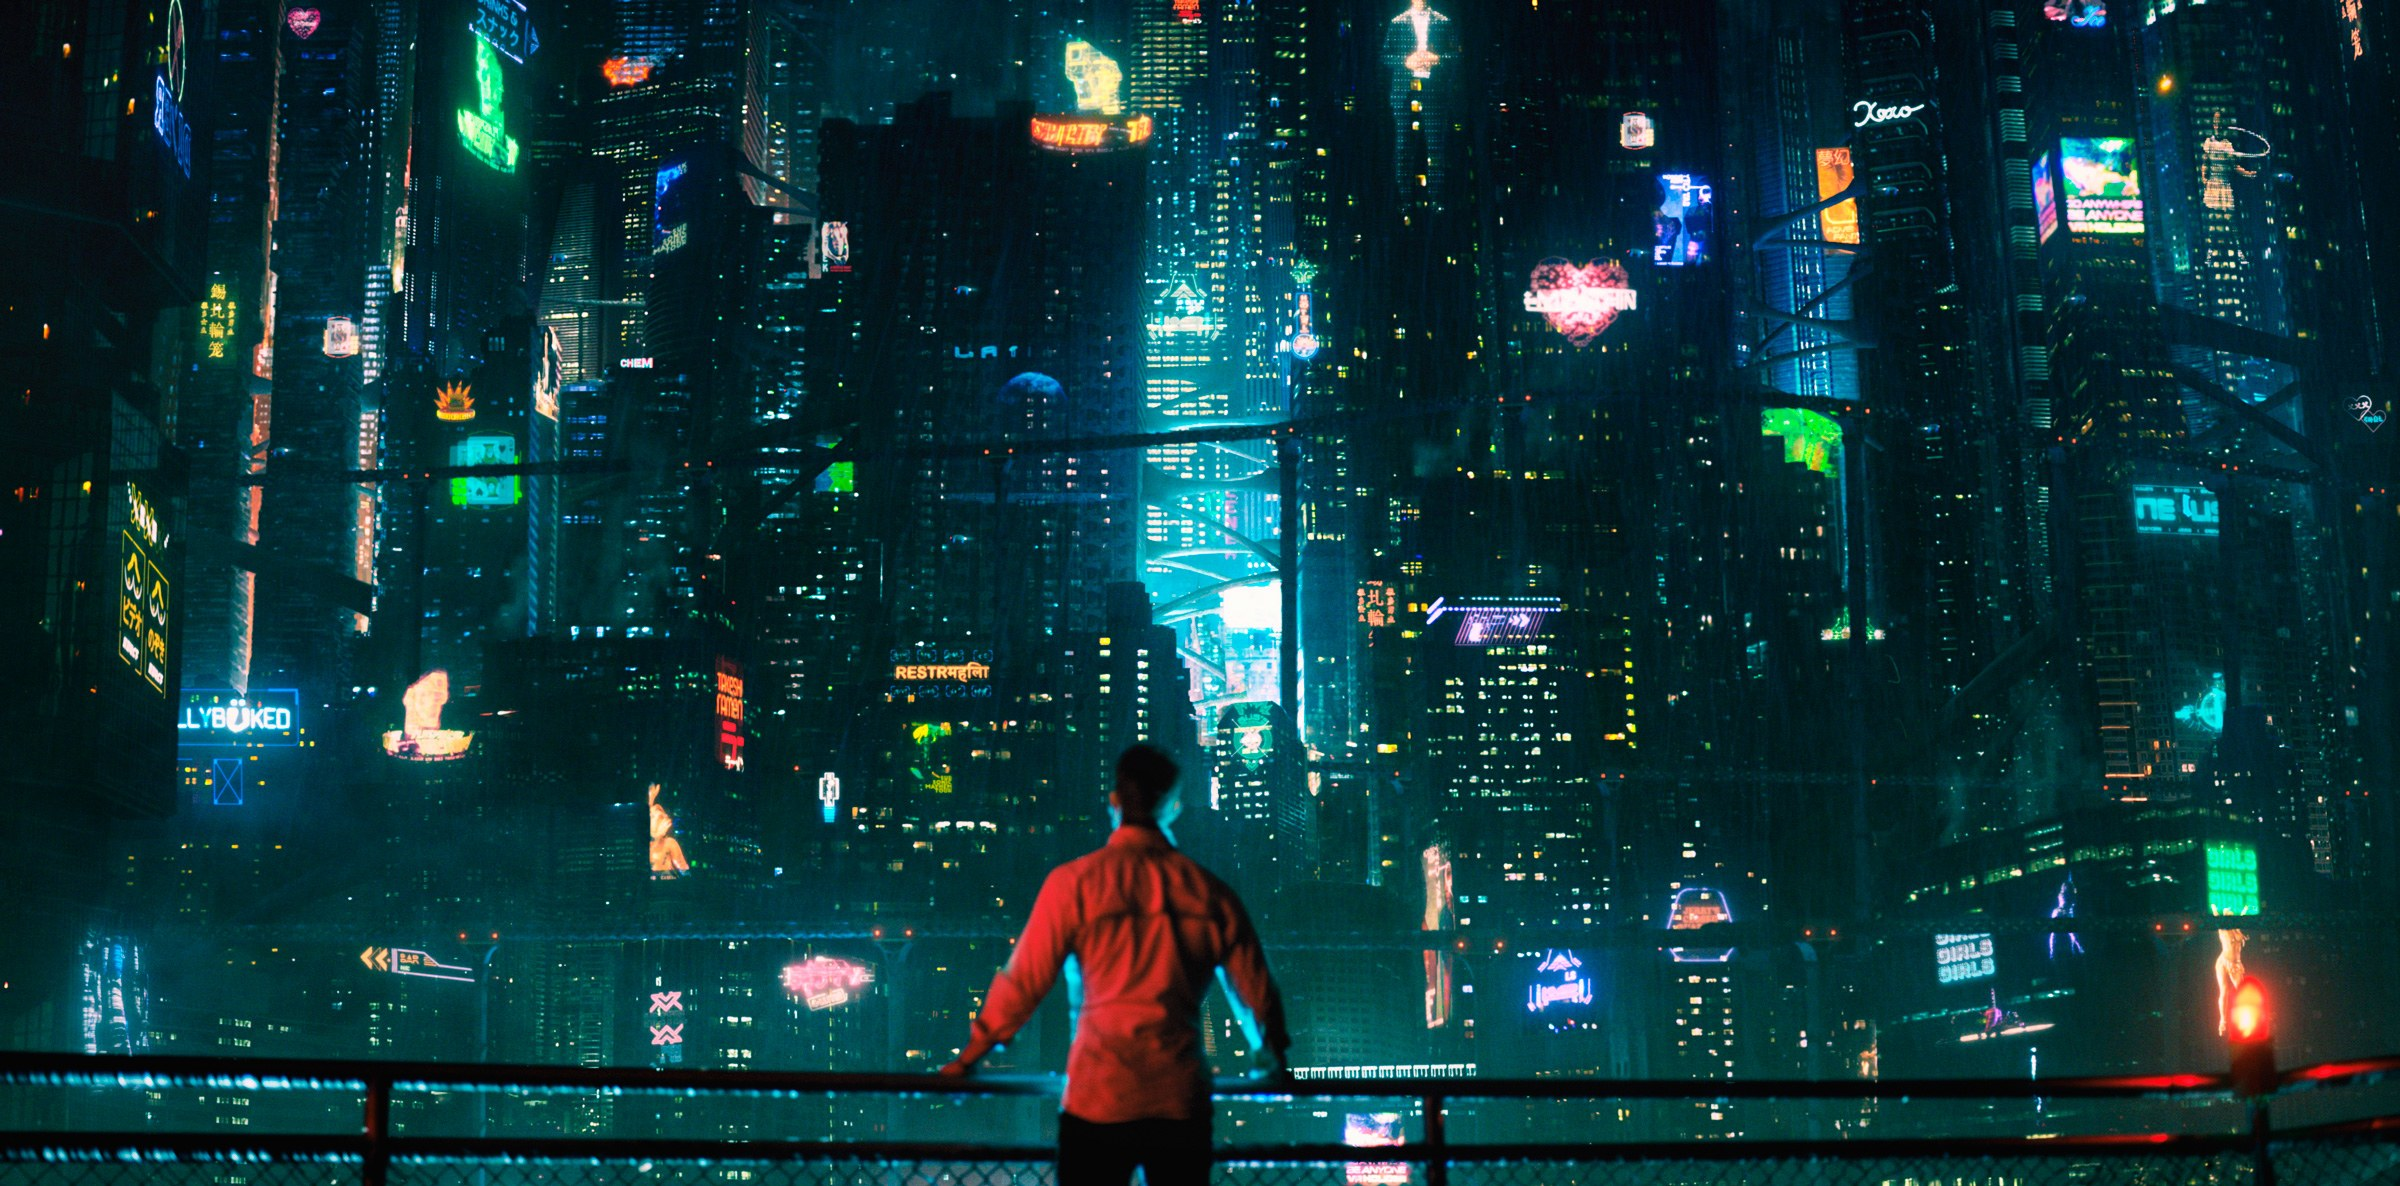 AlteredCarbon-FINAL.jpg